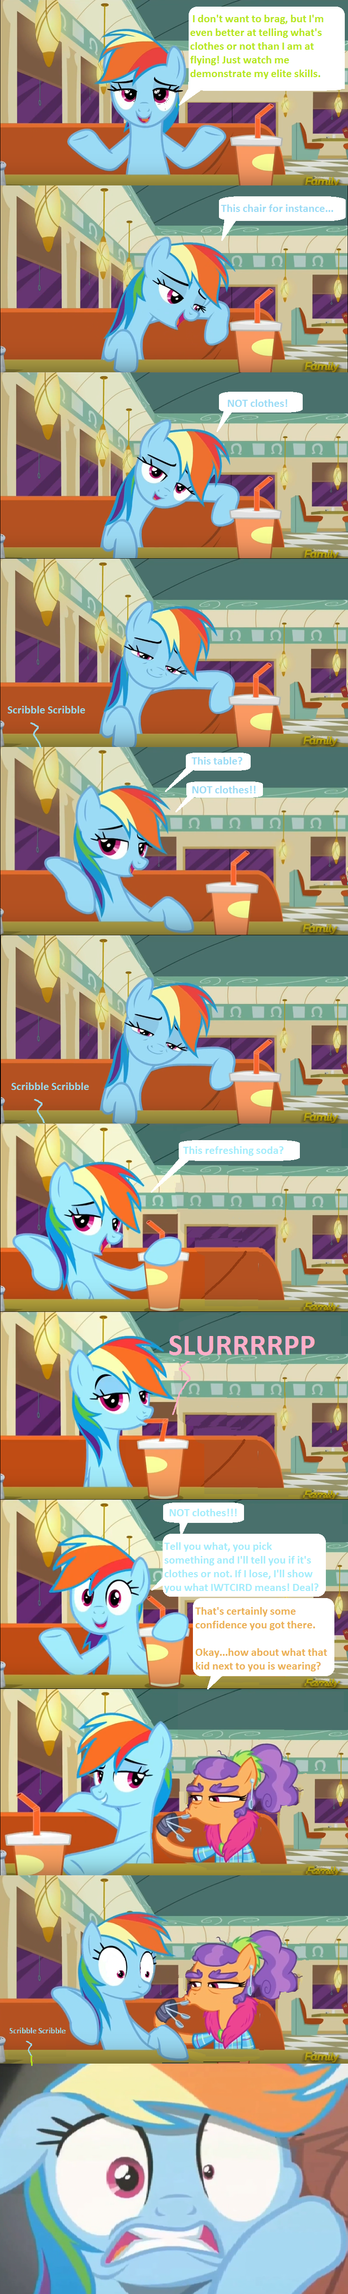 RD gets spooned by Brony4Lyfe1